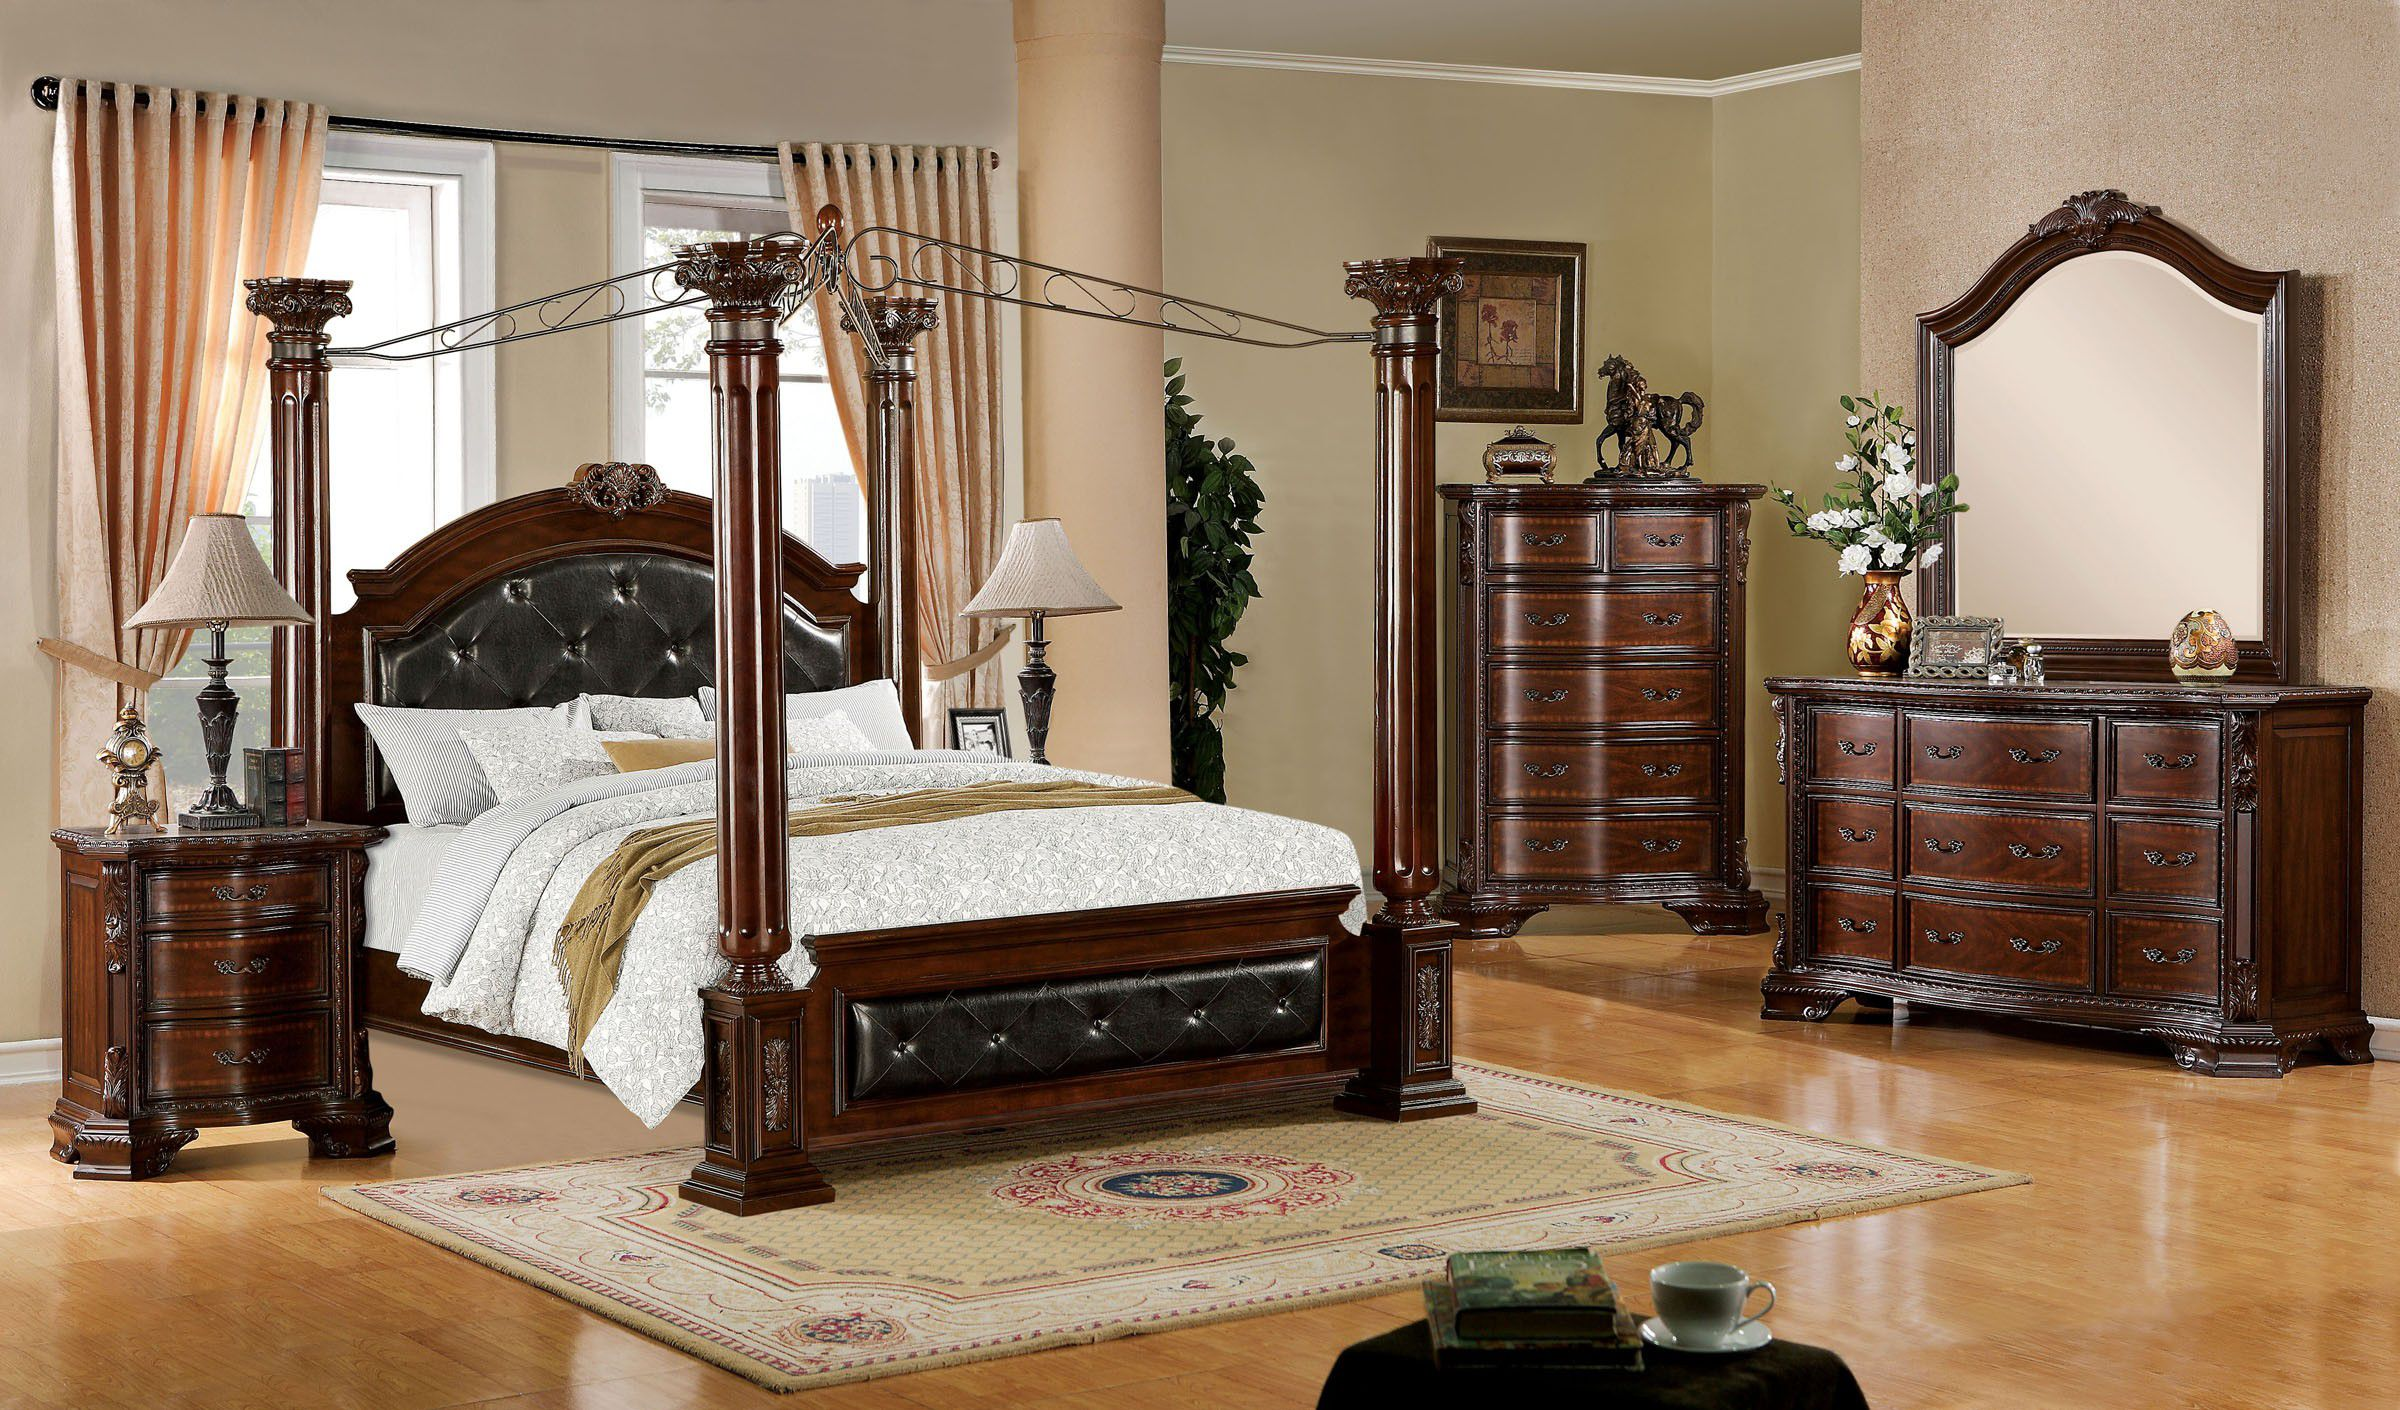 Decorate Gorgeous Bedroom with Oak Canopy Bedroom Sets and Dressers on Laminate Wooden Flooring